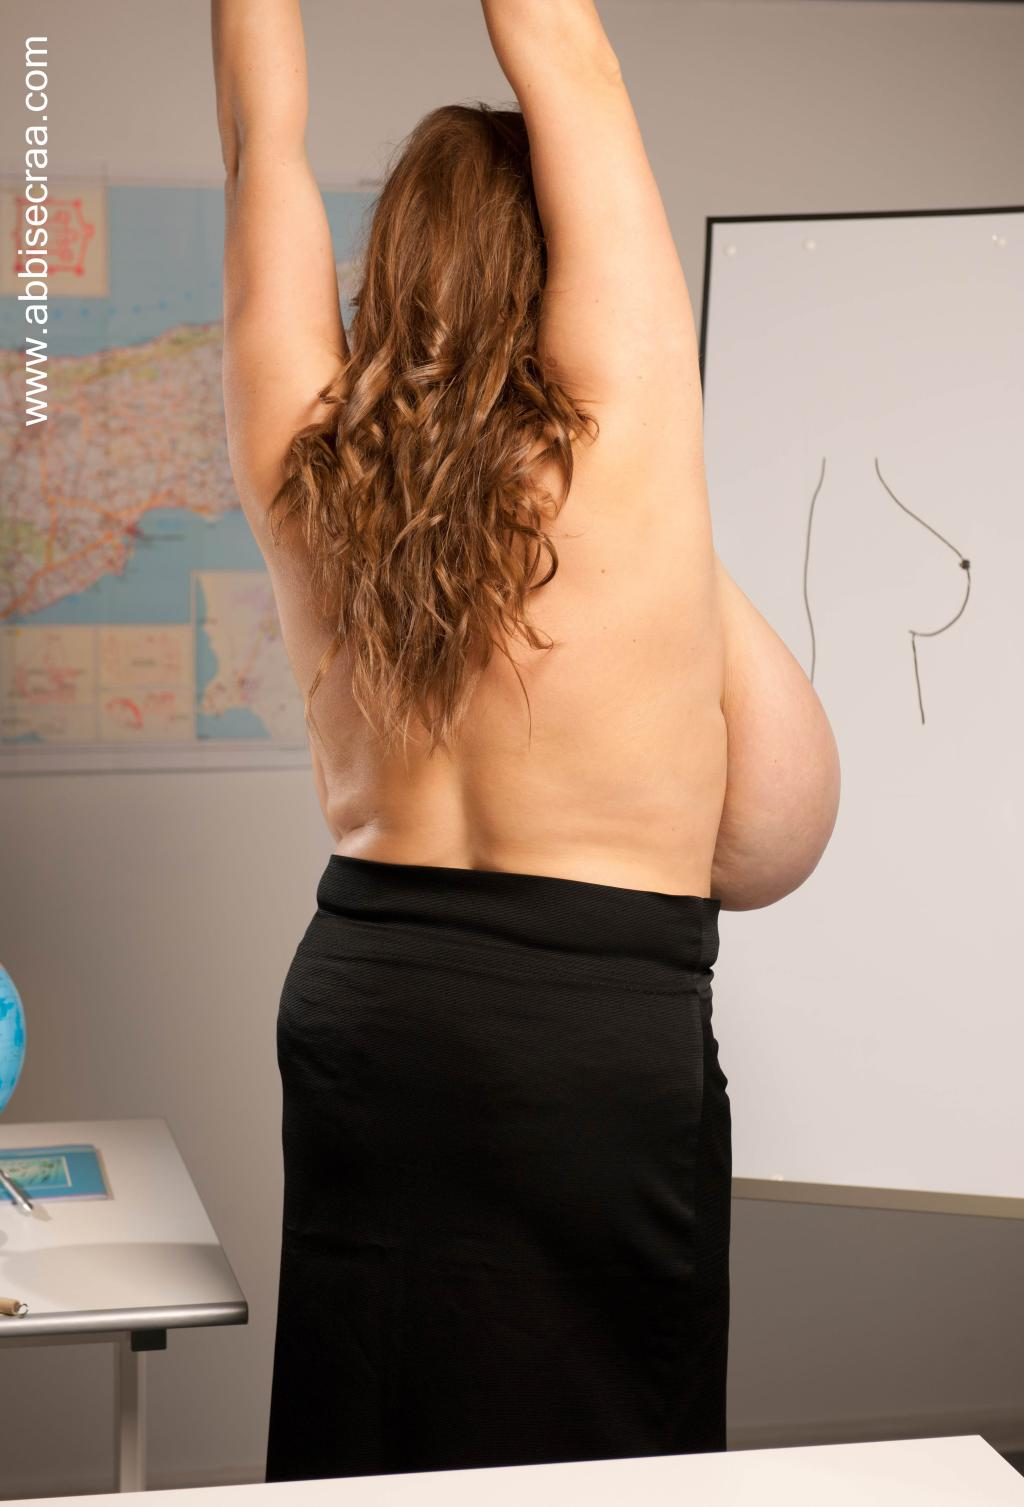 Coming soon: School mistress in HD pictures